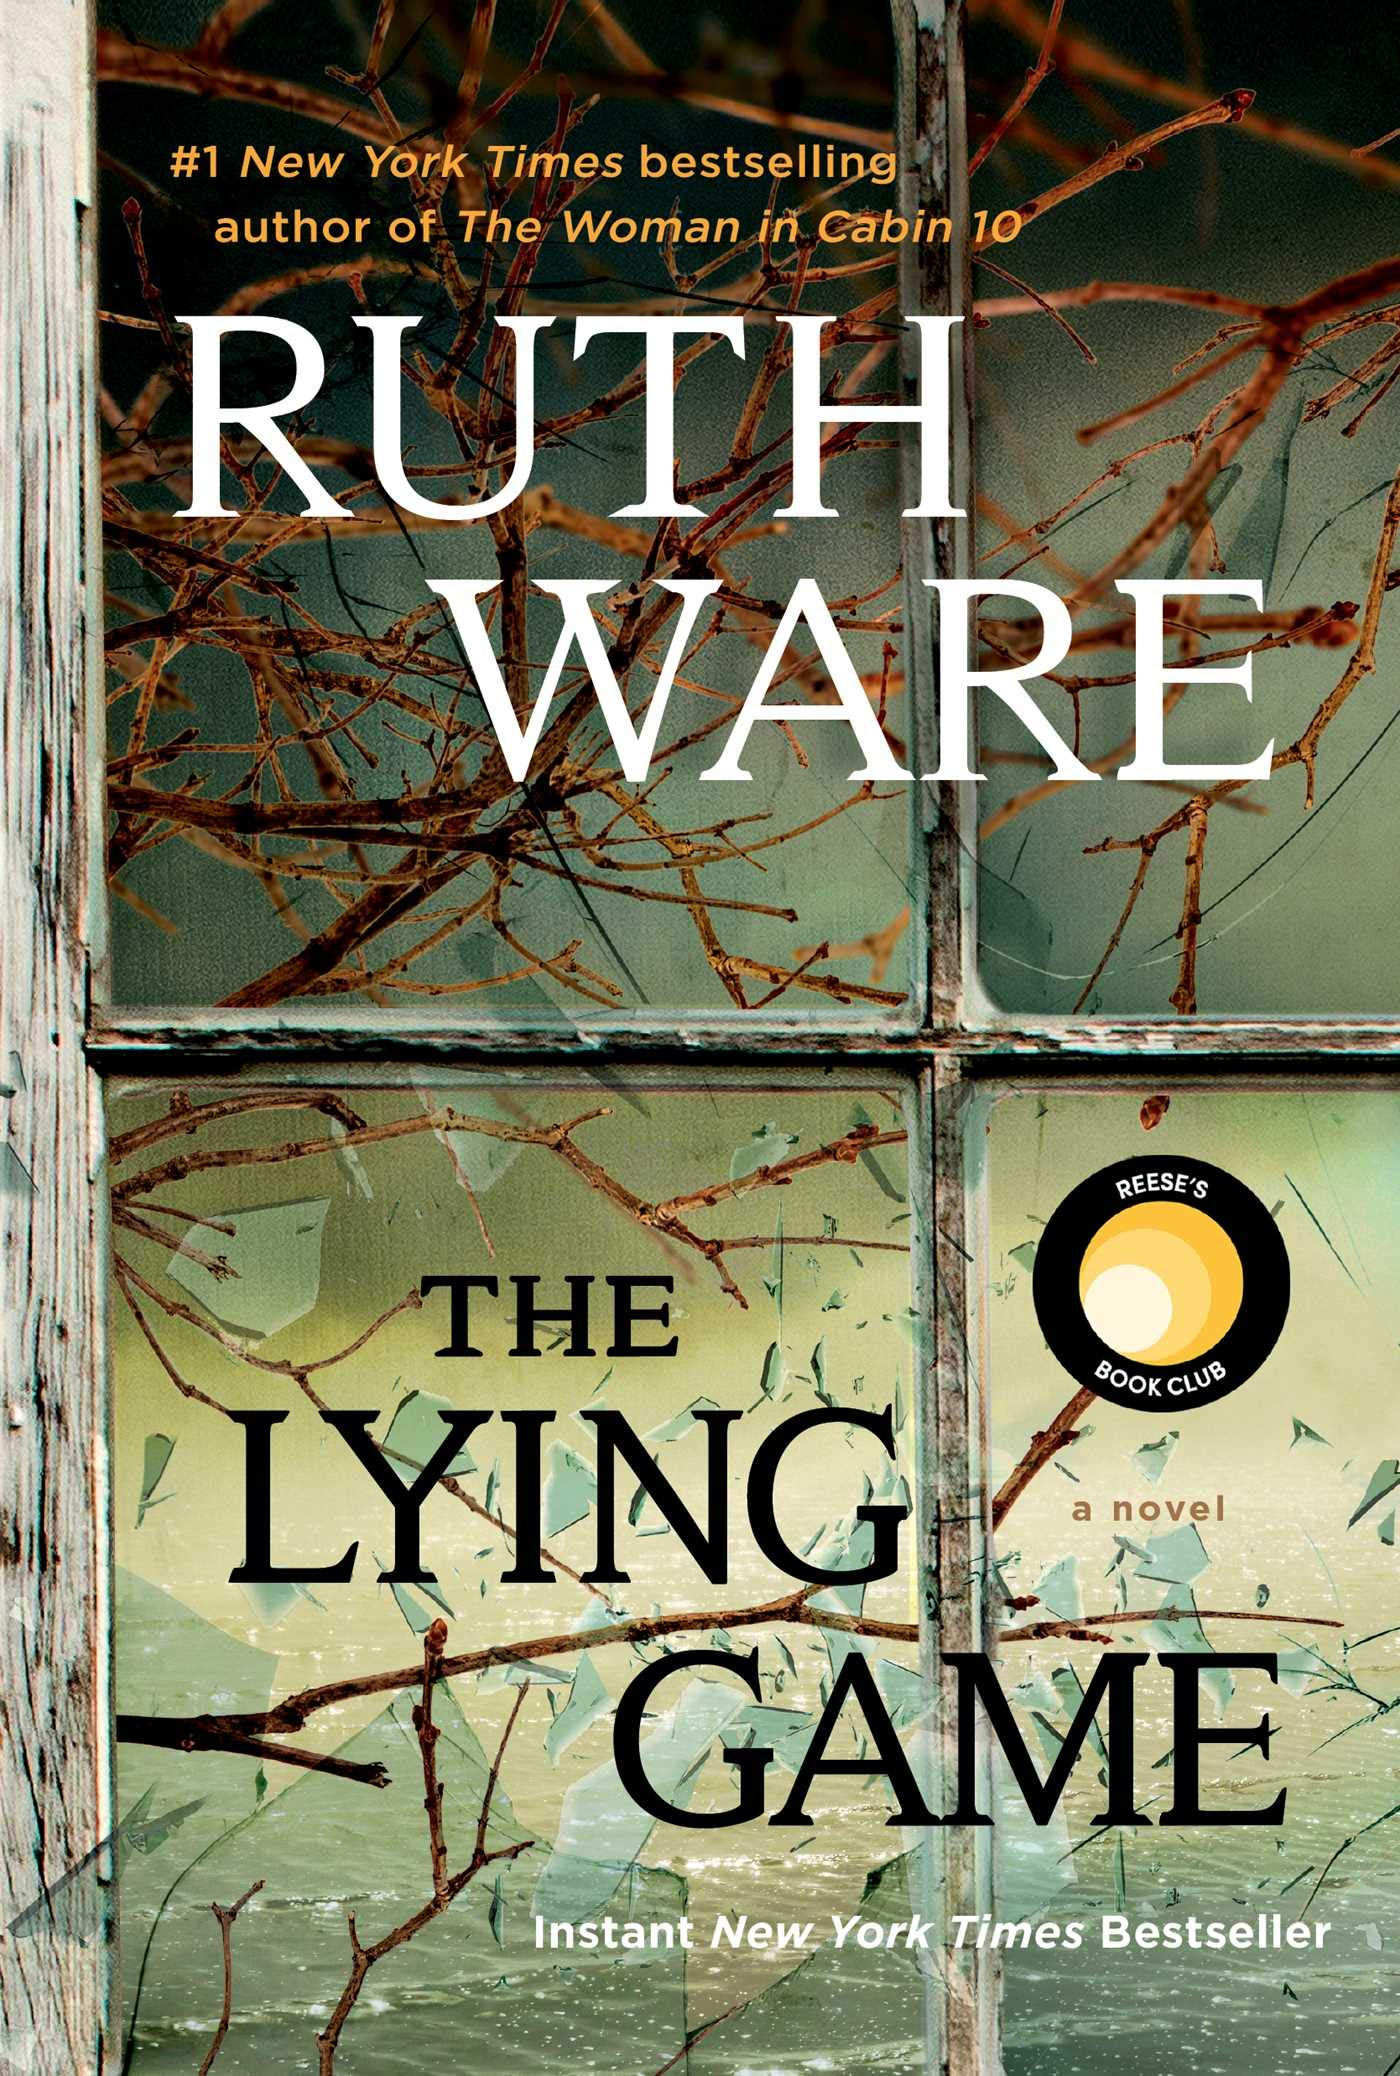 The Lying Game: Ware, Ruth: 9781982143411: Books - Amazon.ca